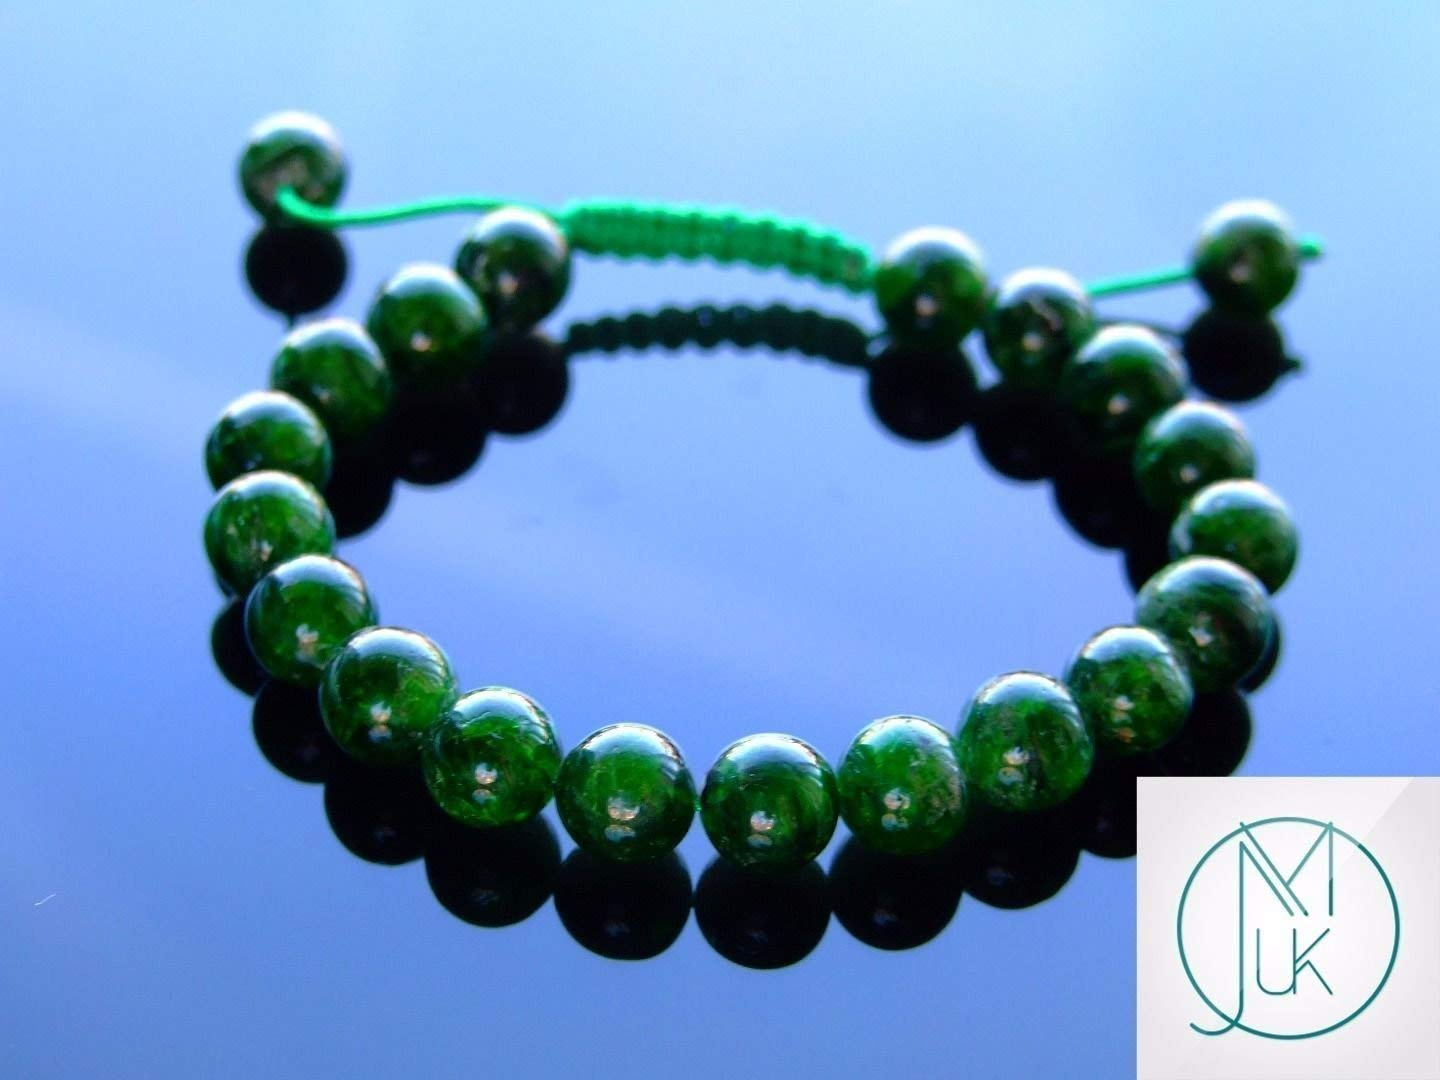 Diopside Natural Gemstone Bracelet Beaded 6-9 Macrame Healing Stone Chakra Reiki With Pouch FREE UK SHIPPING